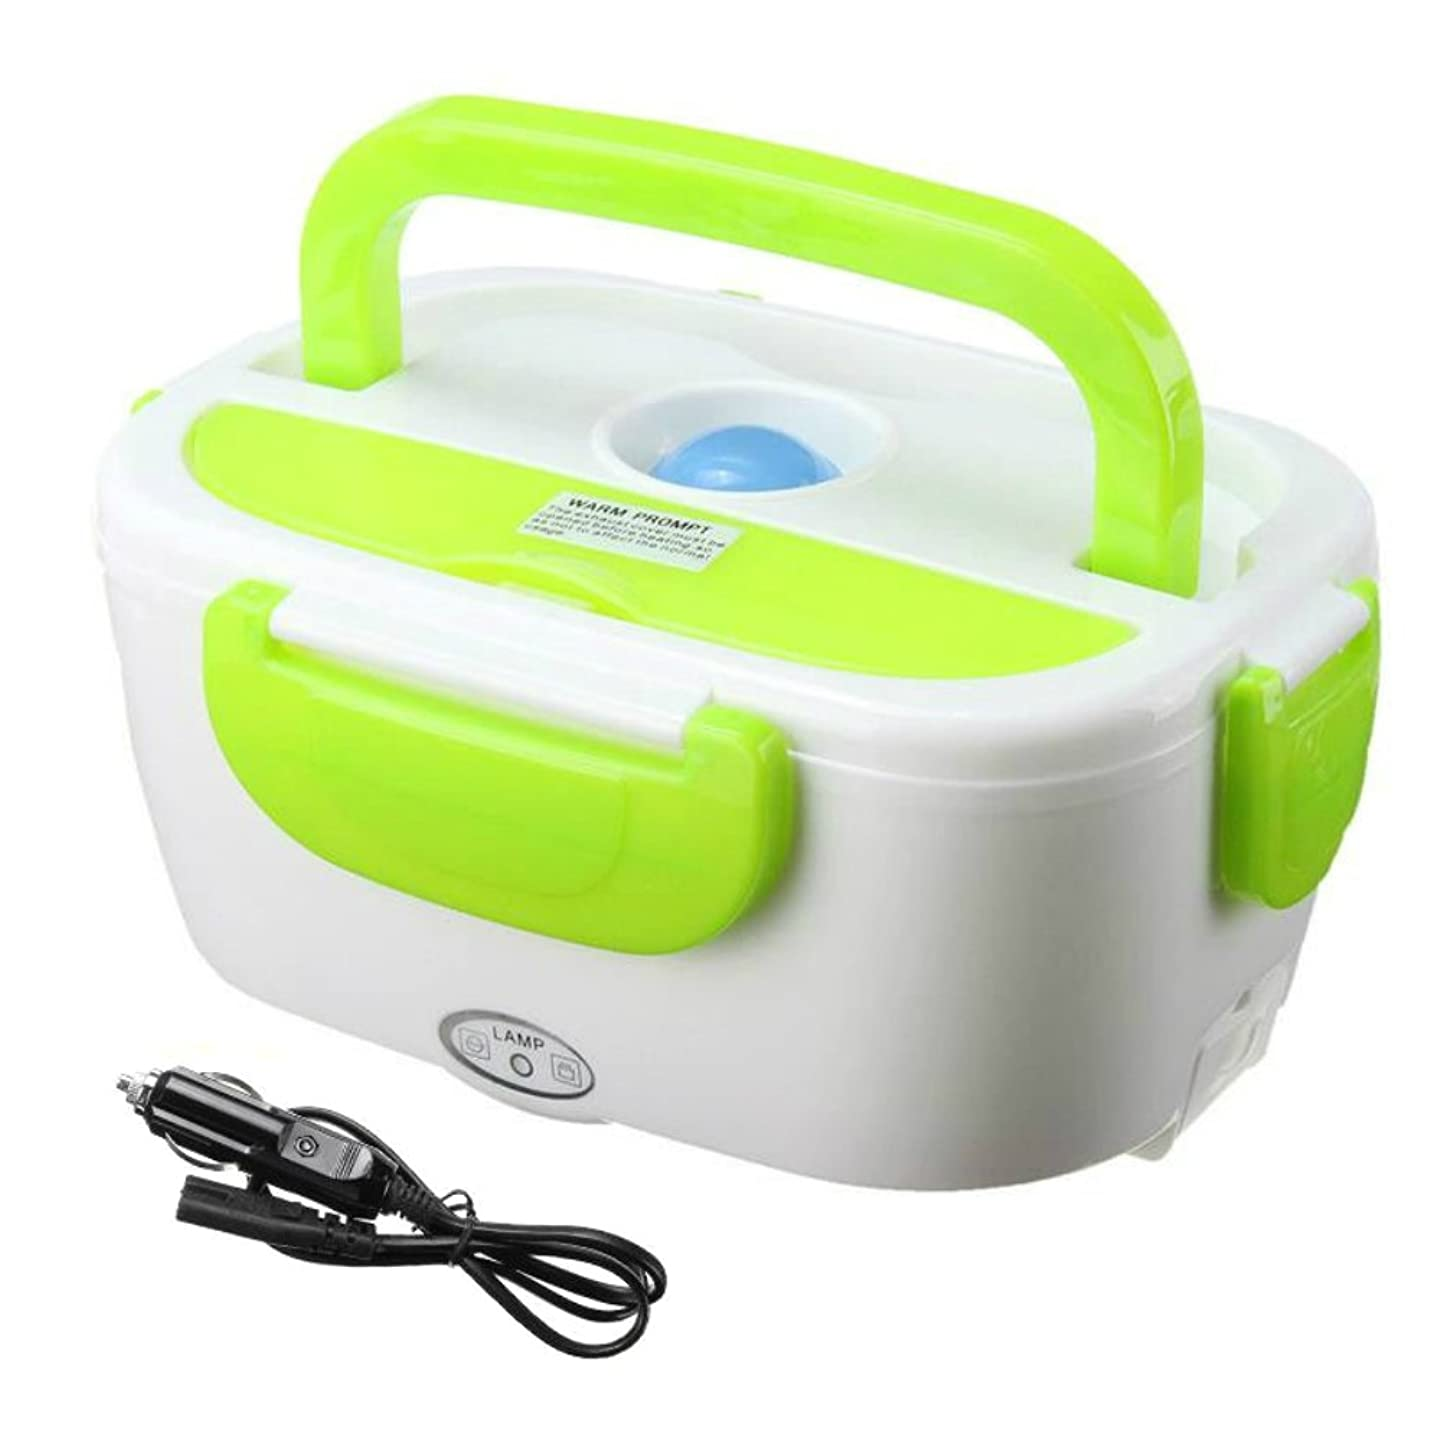 12V Car Electric Lunch Box Meal Food Heater Warmer